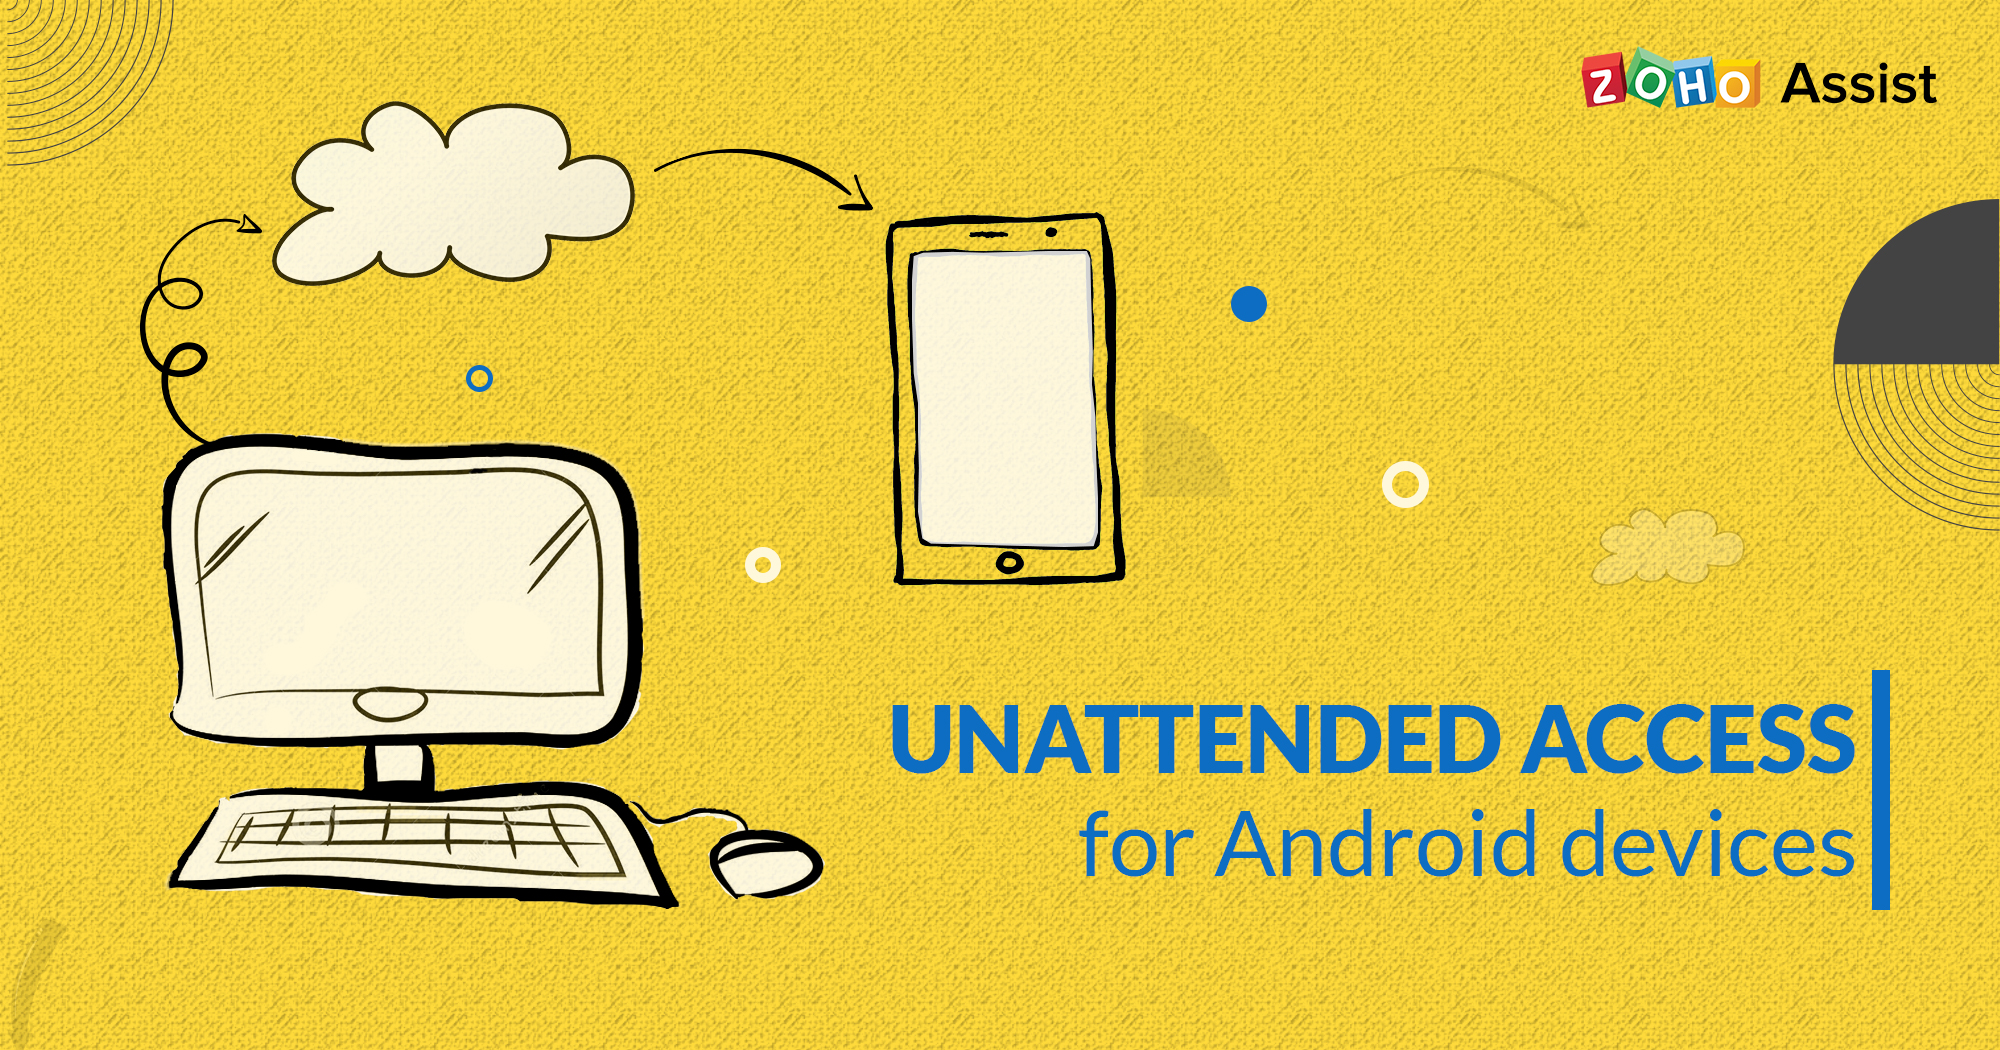 Connect to Android devices with greater ease with Zoho Assist Unattended Access.